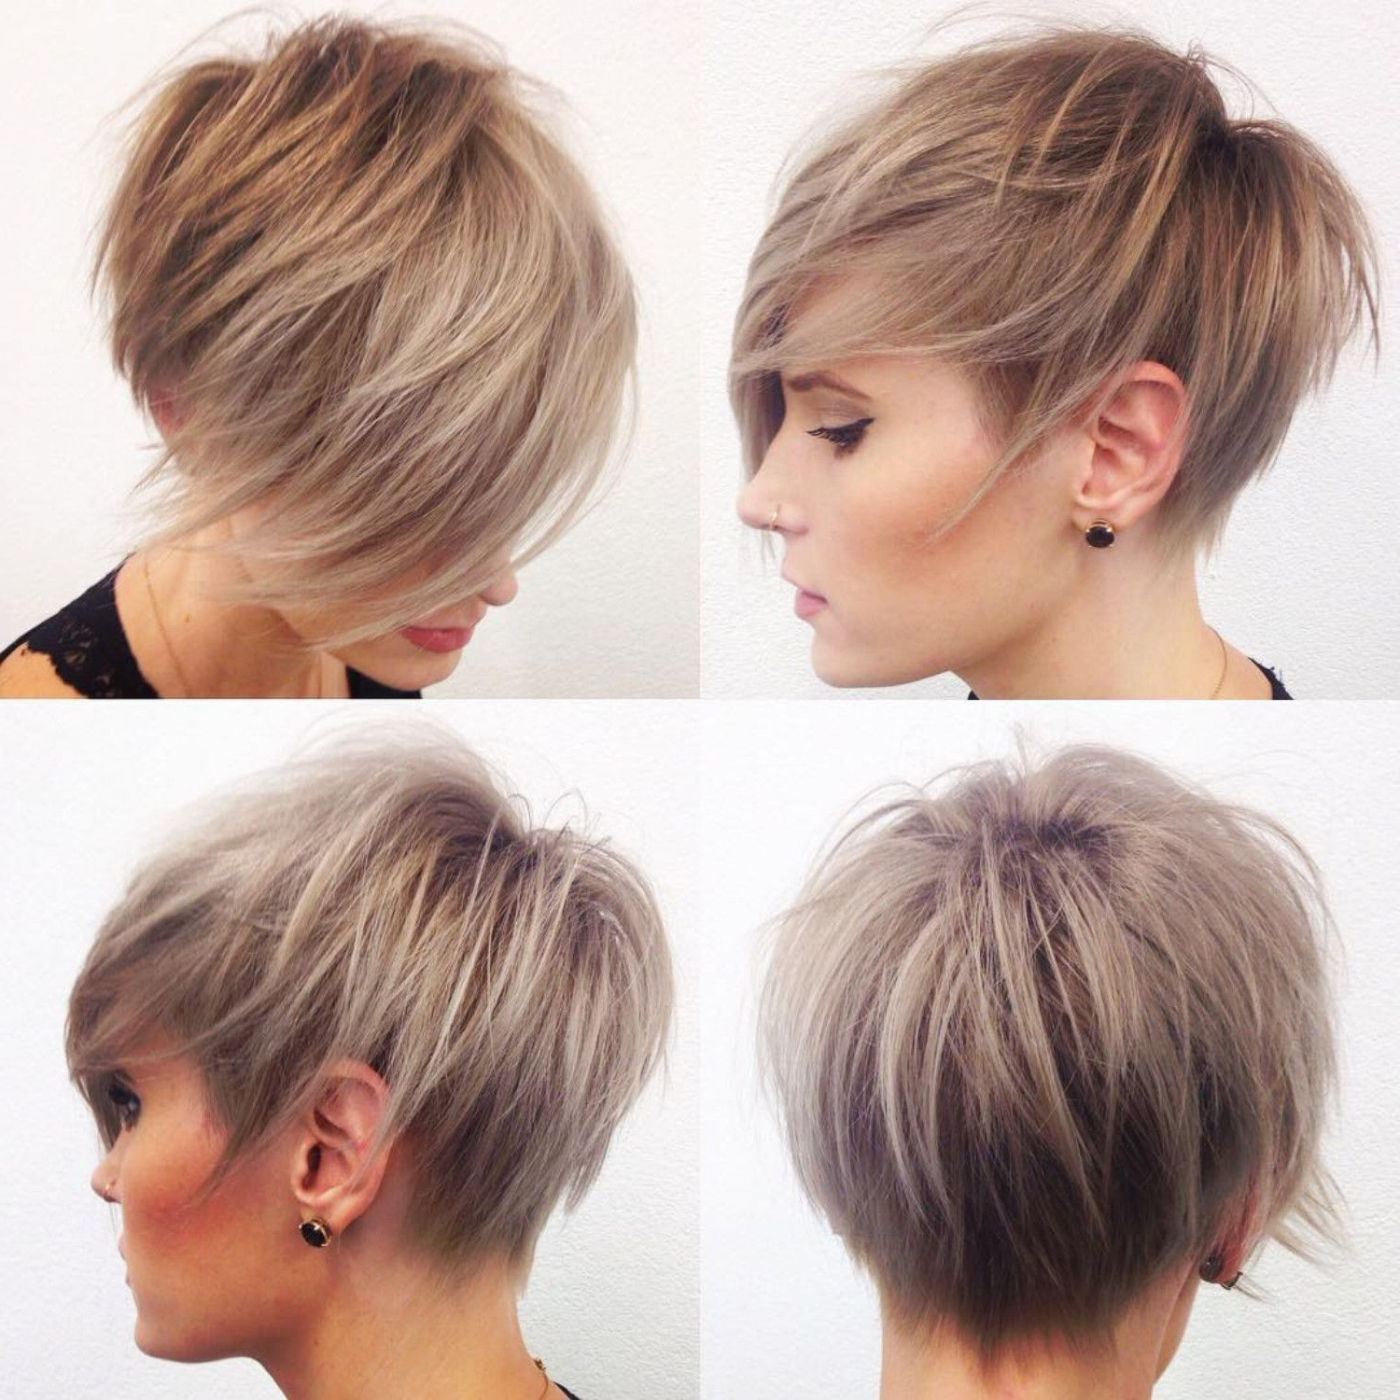 100 Mind Blowing Short Hairstyles For Fine Hair | Hair And Beauty Inside Razored Pixie Bob Haircuts With Irregular Layers (View 3 of 20)